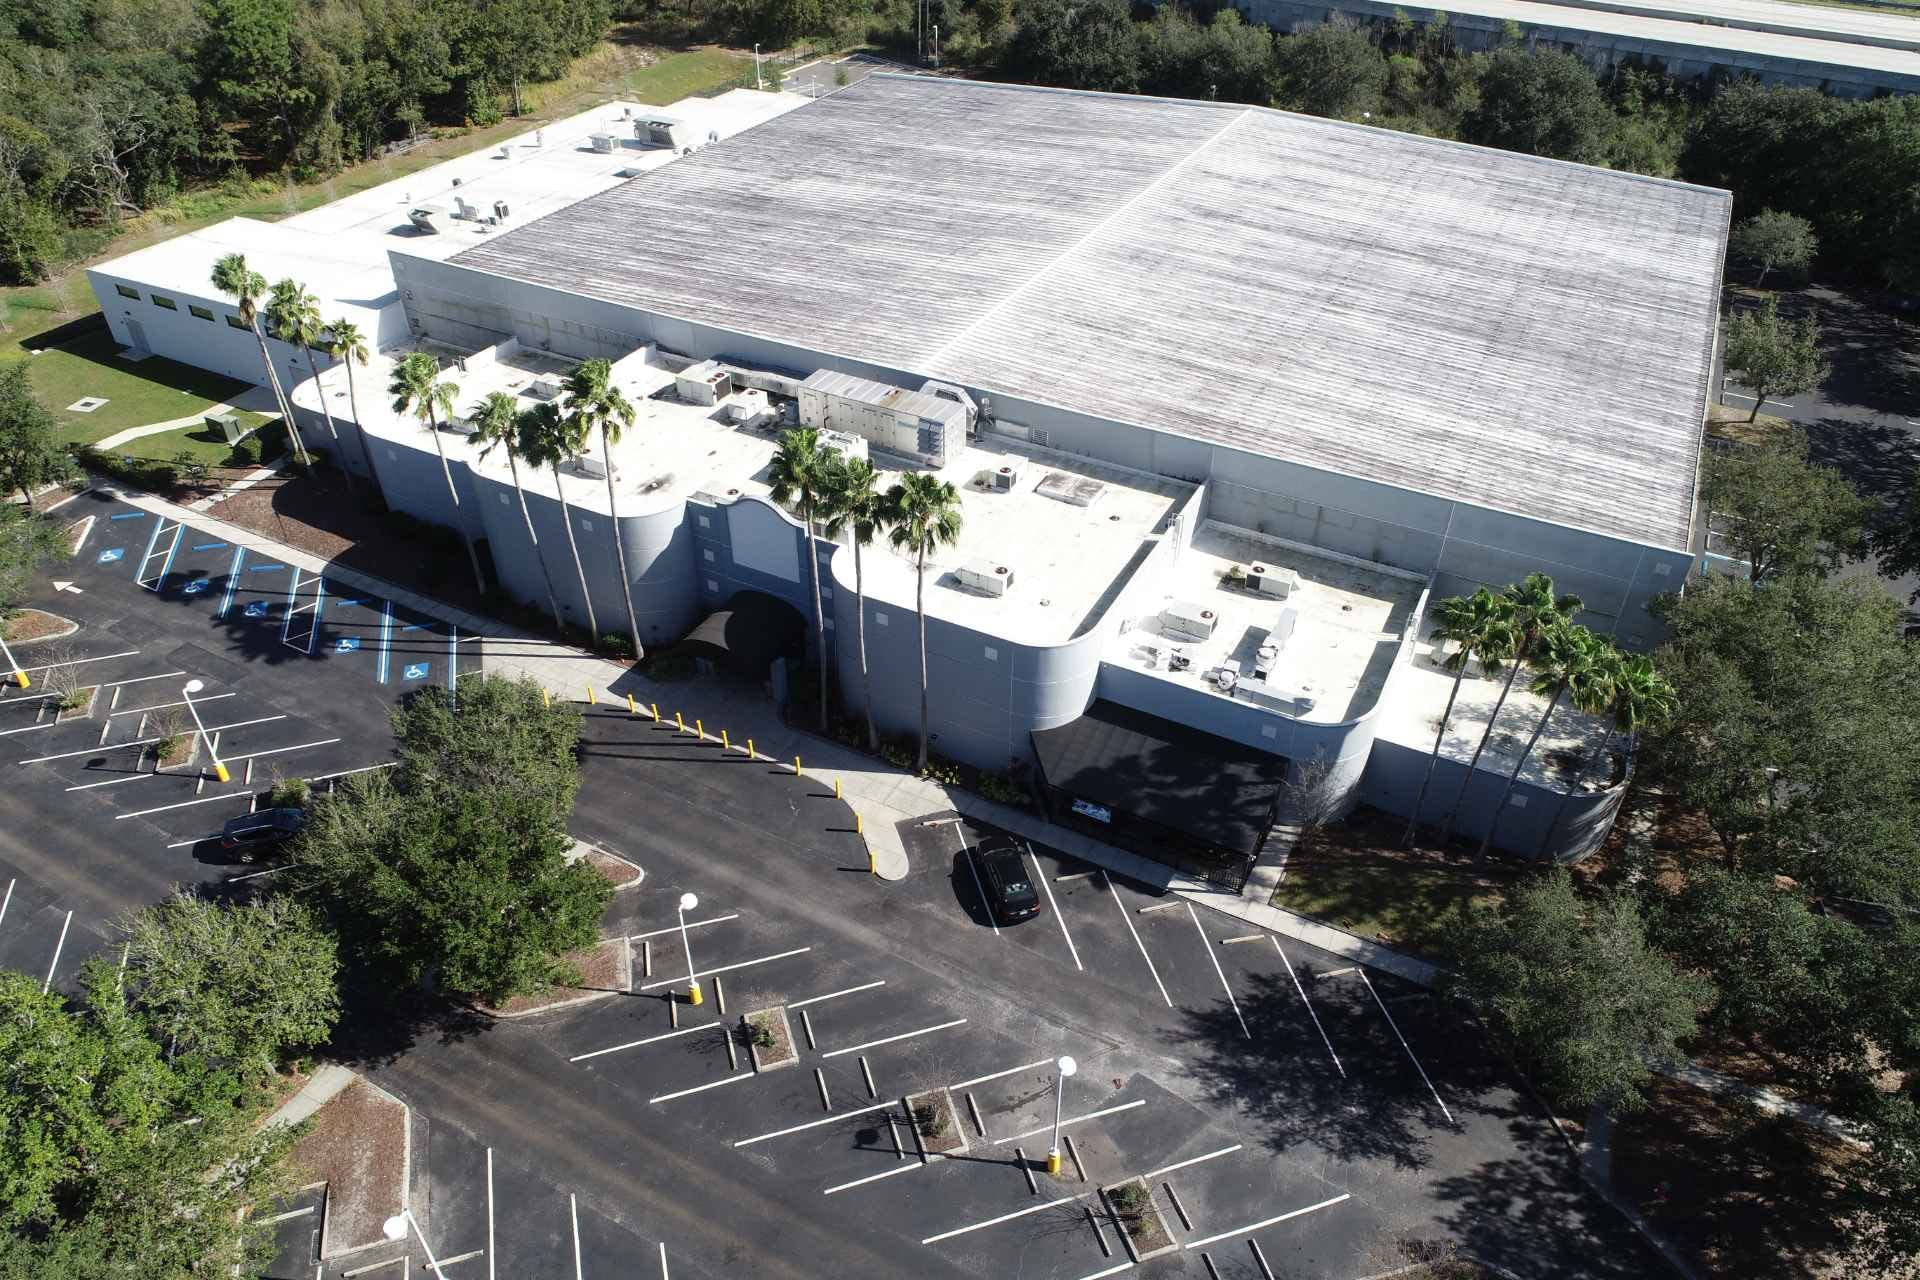 Ice Sports Forum arena photographed from above